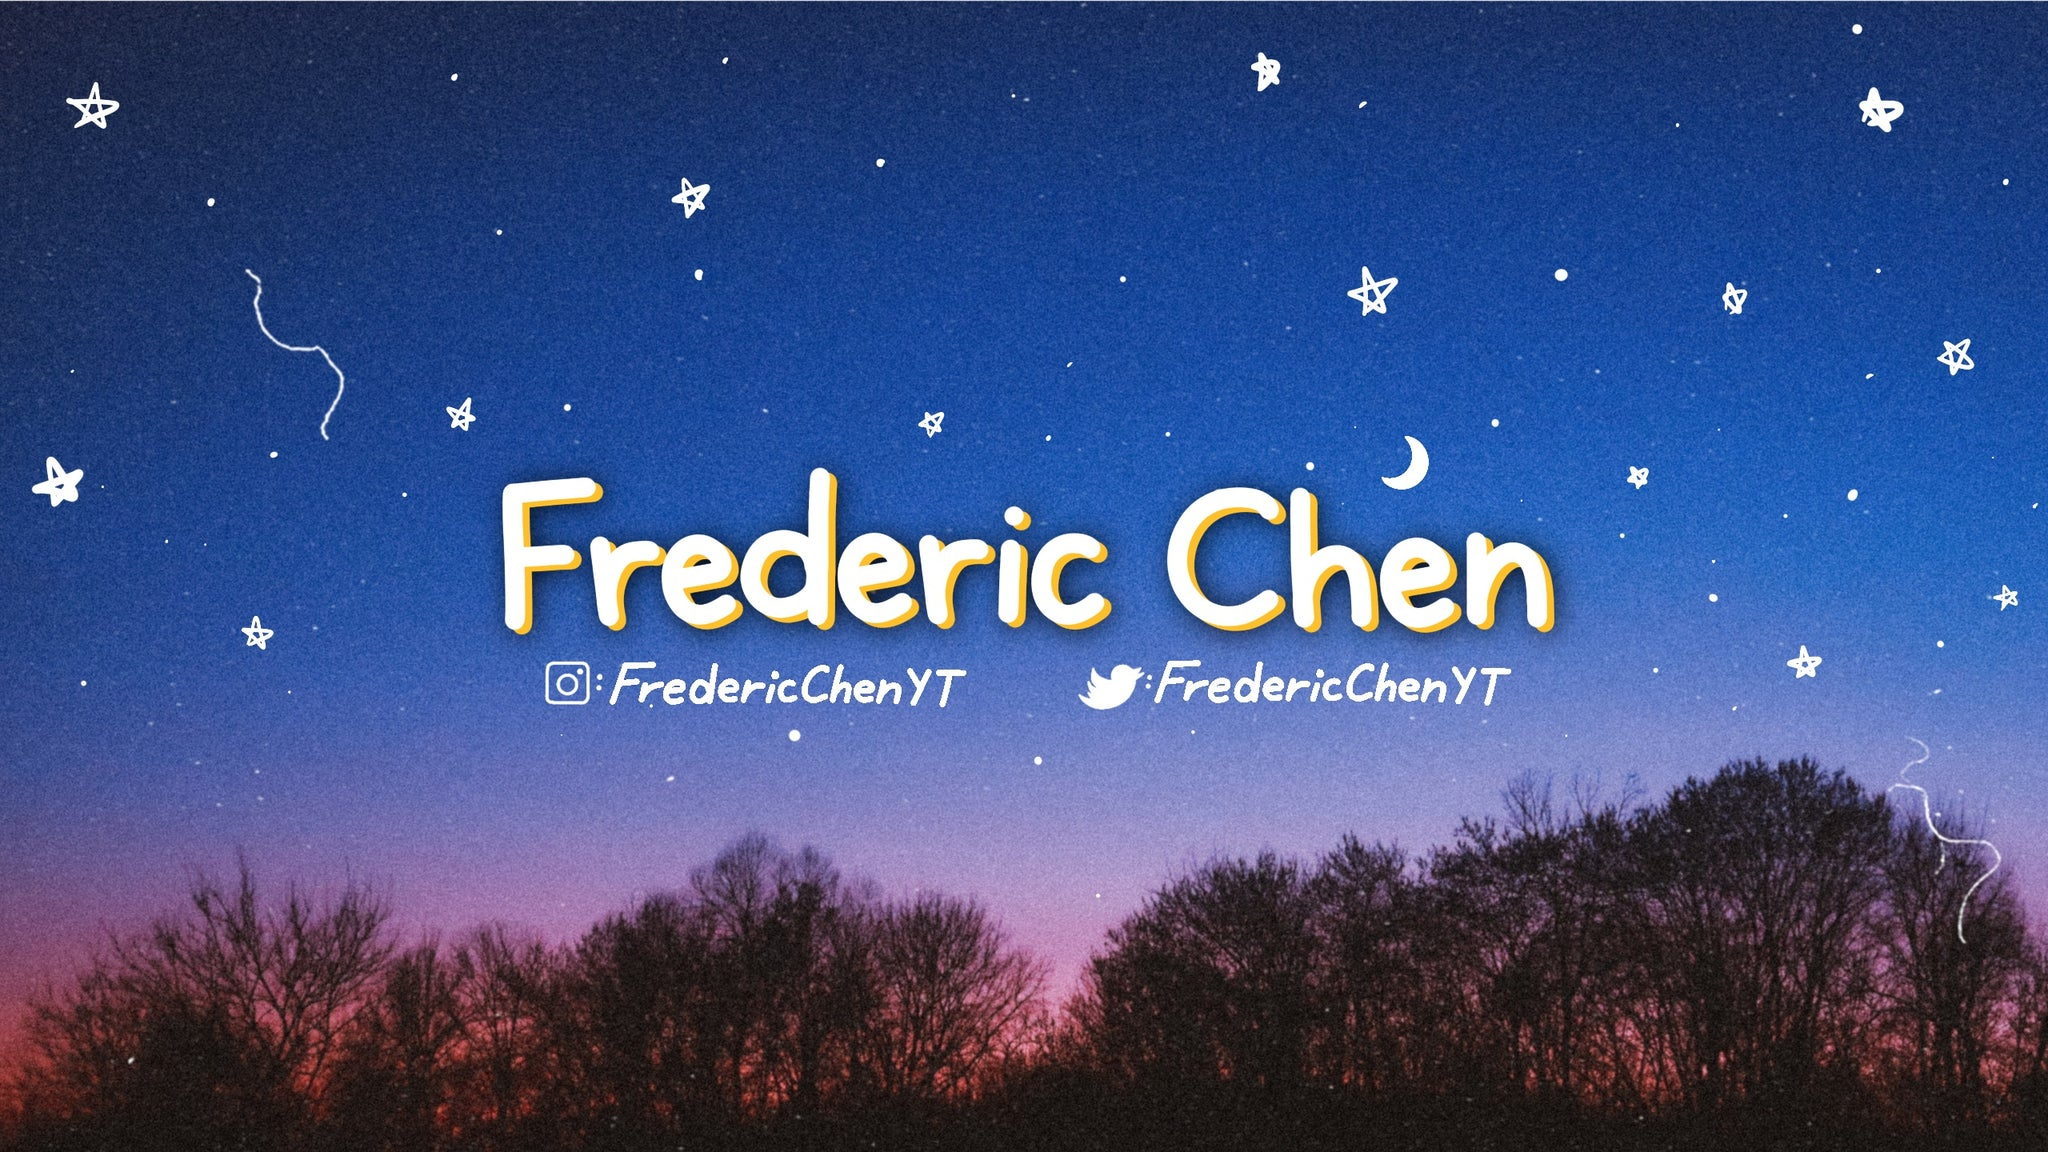 The official merch store for Frederic Chen!